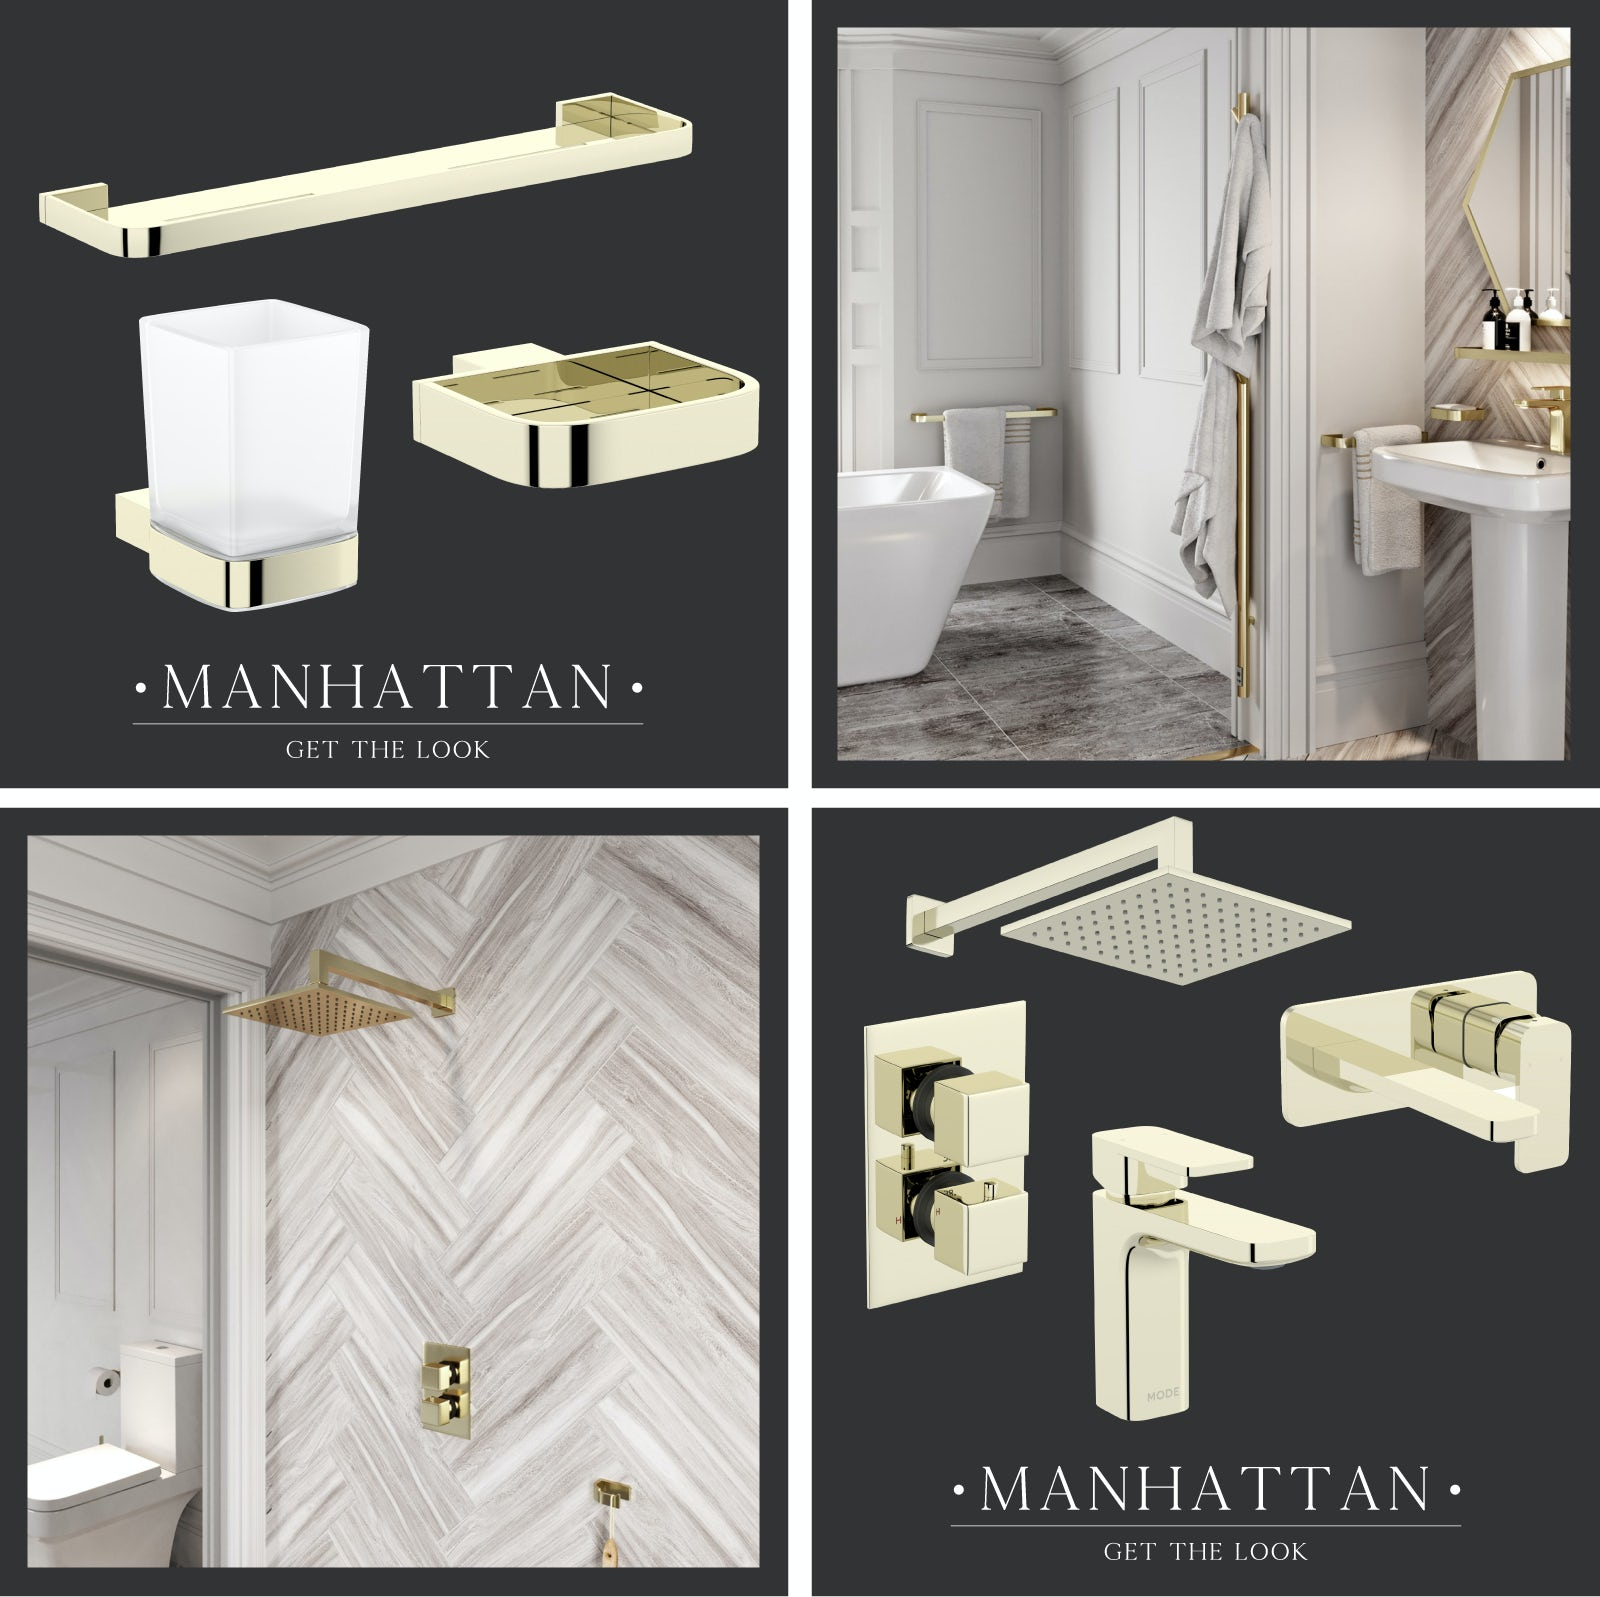 Manhattan bathroom coloured metallic finishes